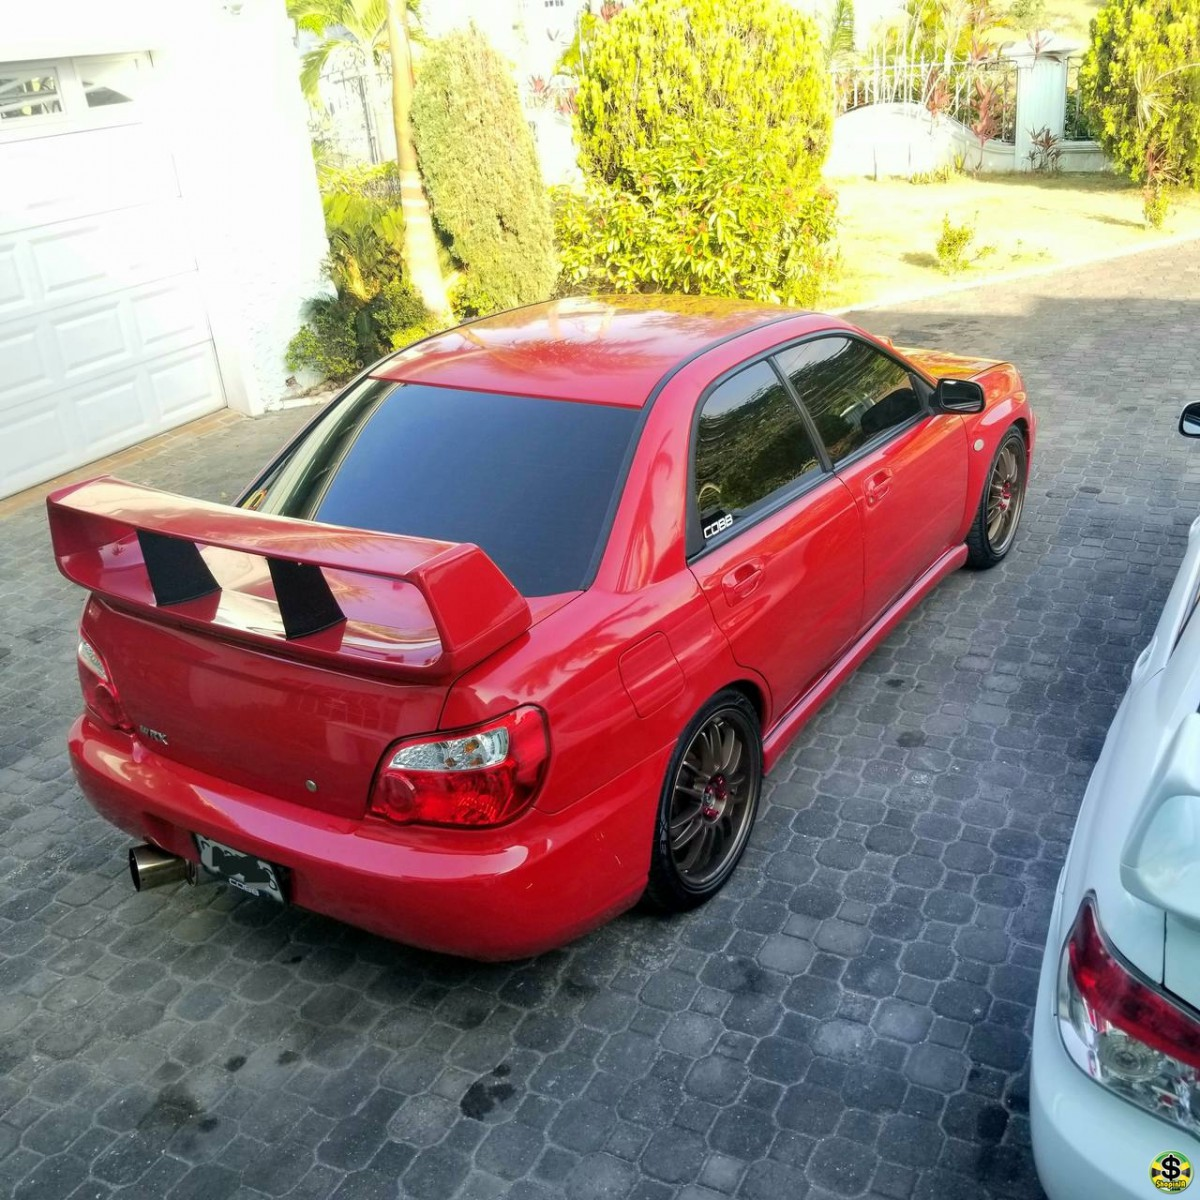 2004 Subaru WRX For Sale In St. Ann, Jamaica